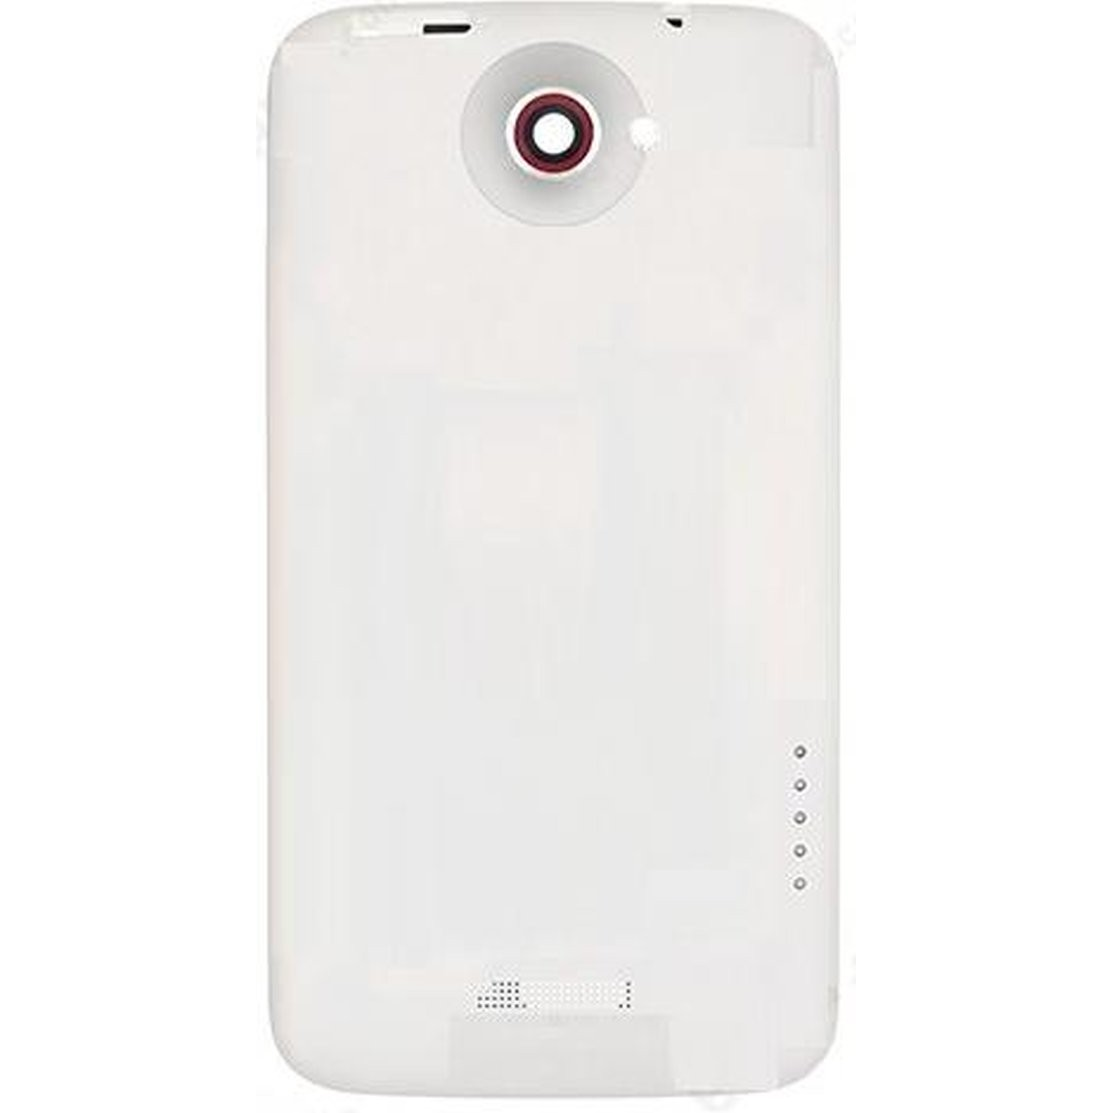 Back Panel Cover for HTC One X Plus - White